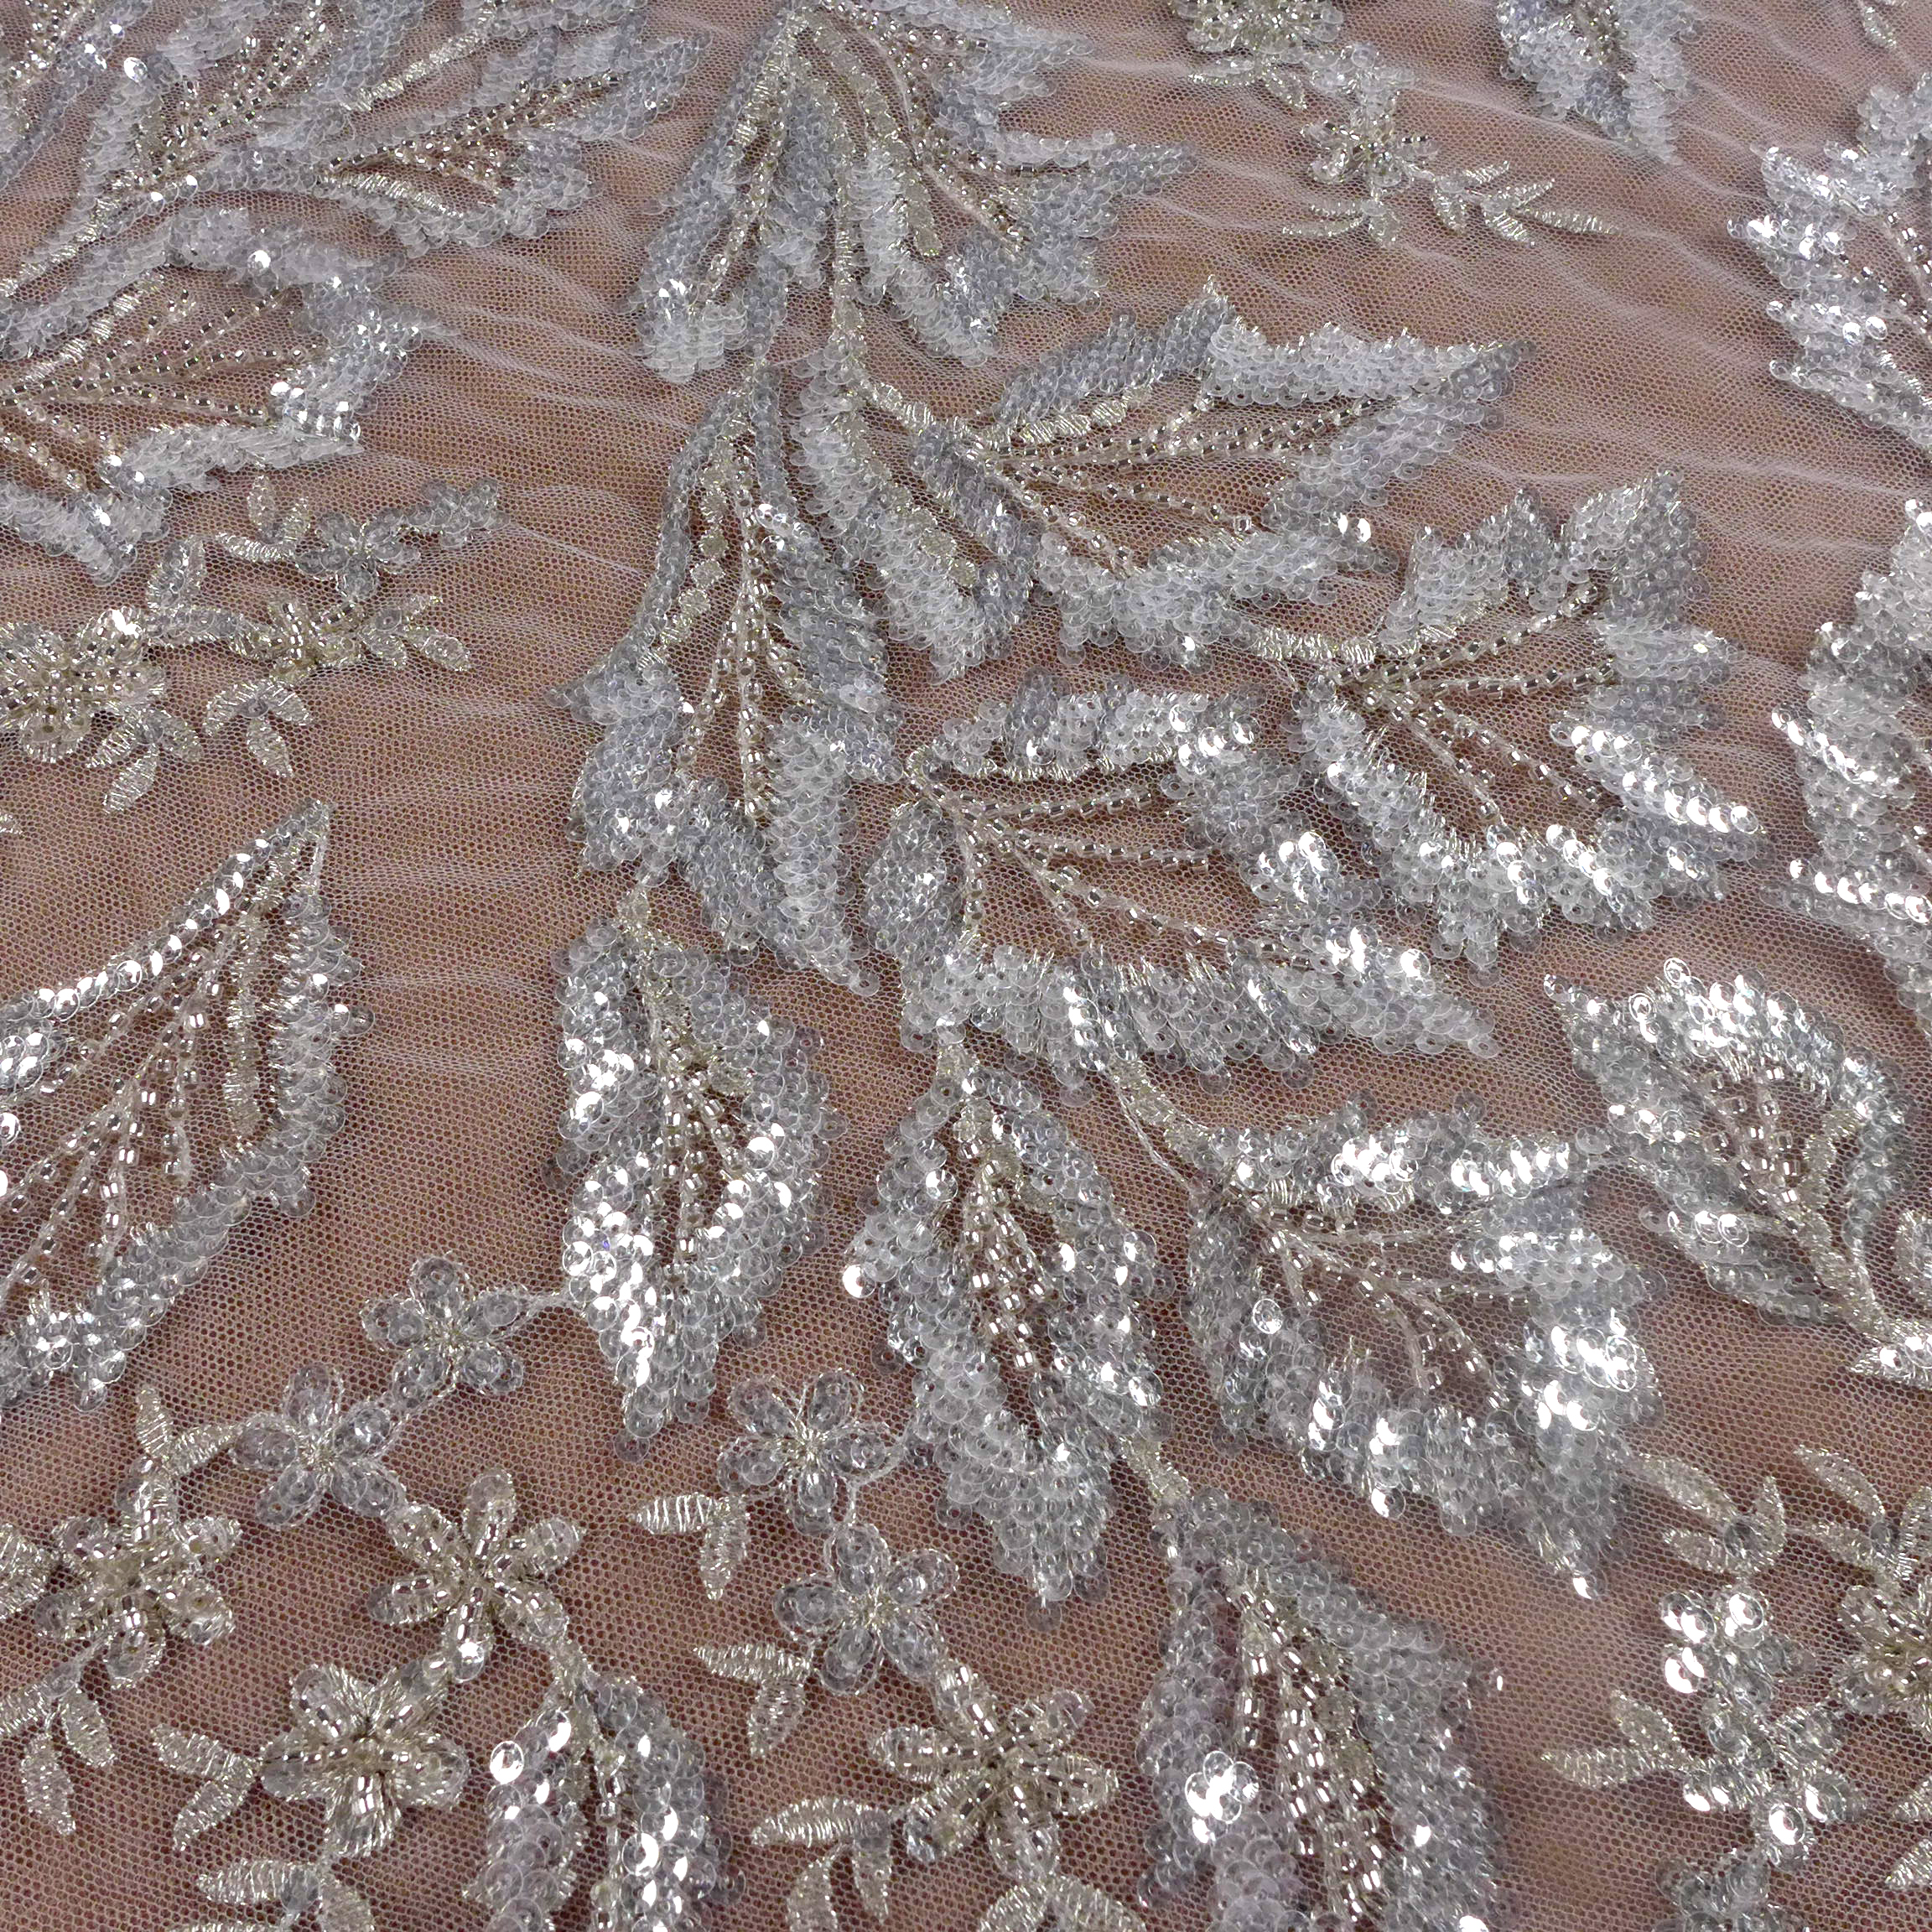 La Belleza new beaded sequins wedding dress lace fabric off white beads sequins lace fabric leaves pattern lace 1 yard title=